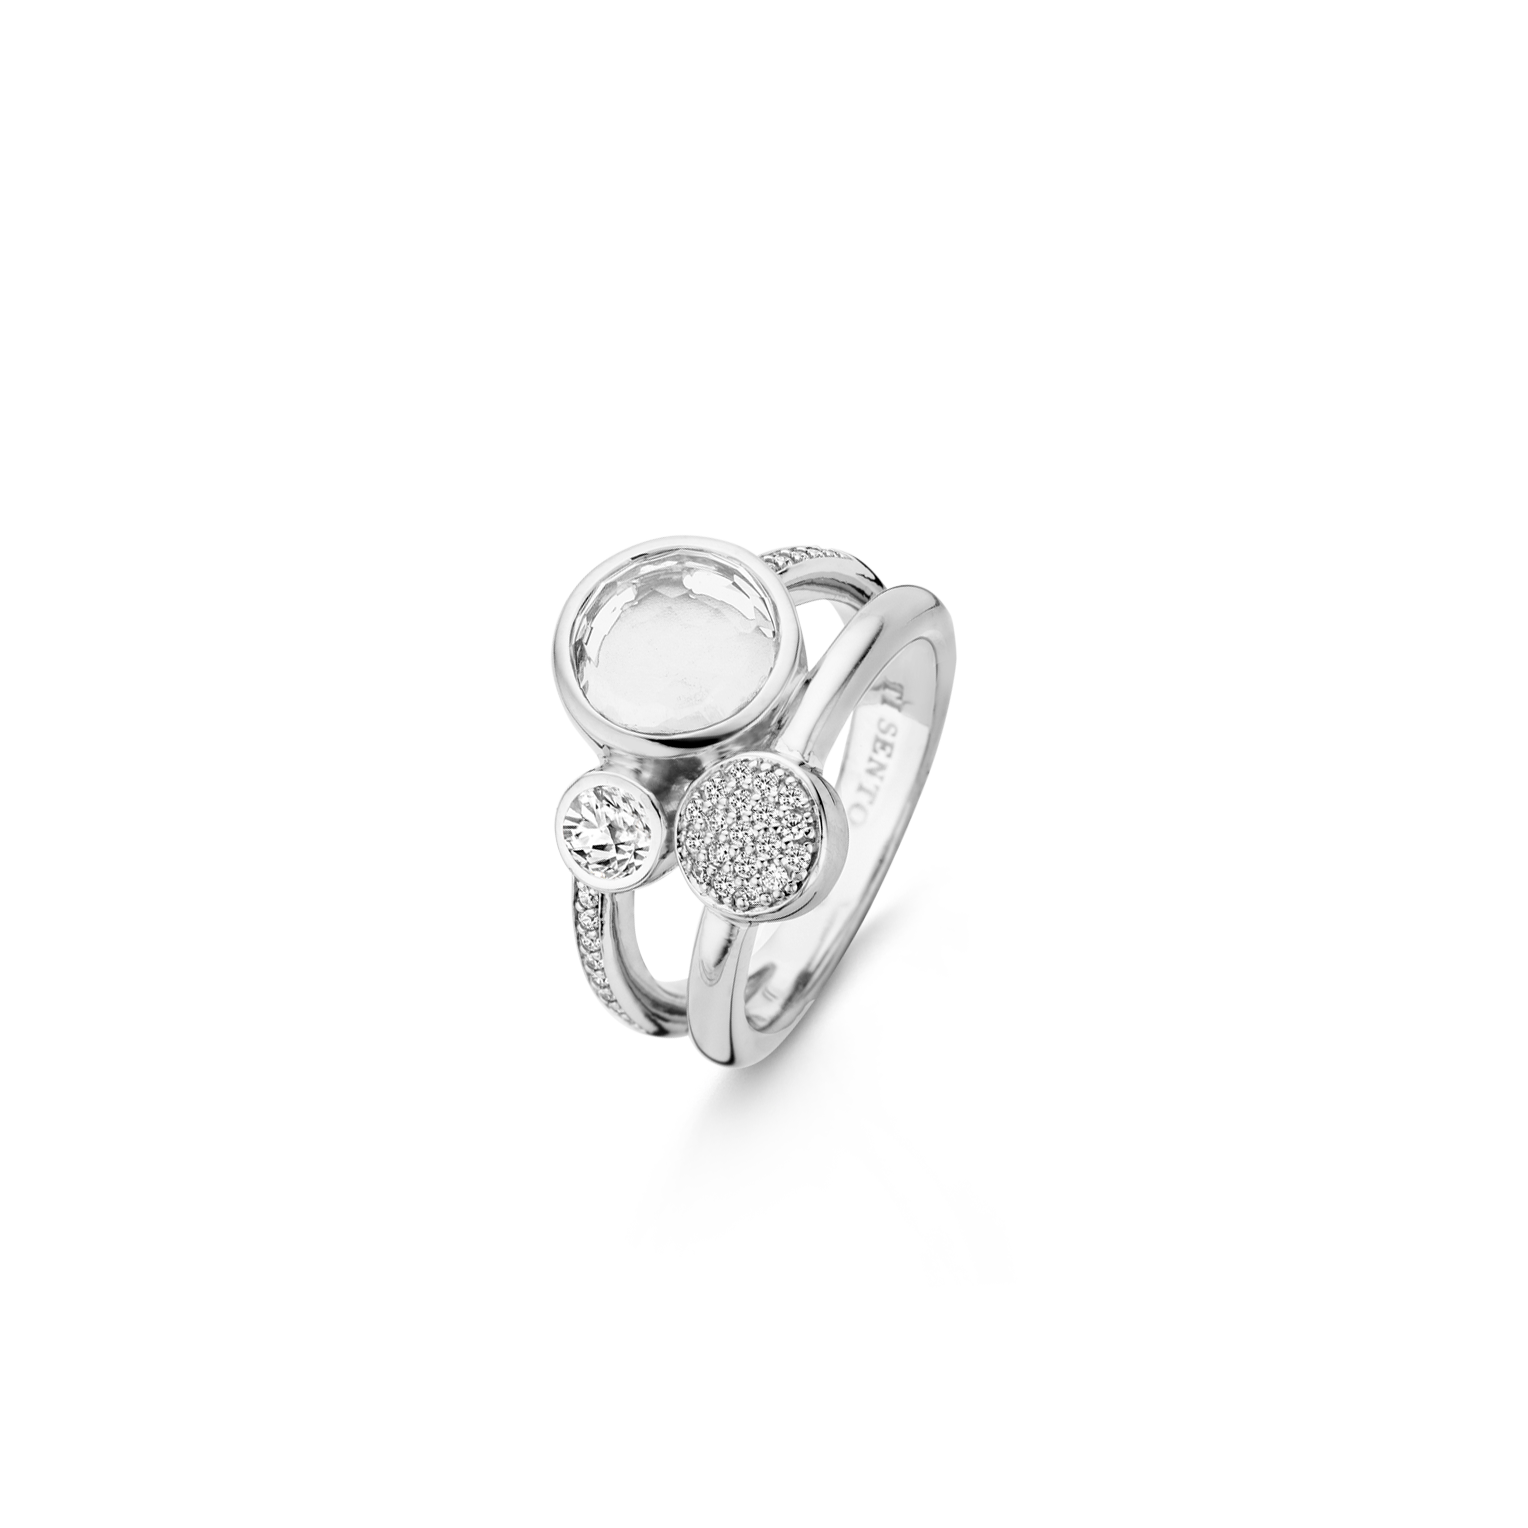 Image of TI SENTO Milano 925 Sterling Zilveren City Chic Ring 12138ZI/52 (Maat: 52)